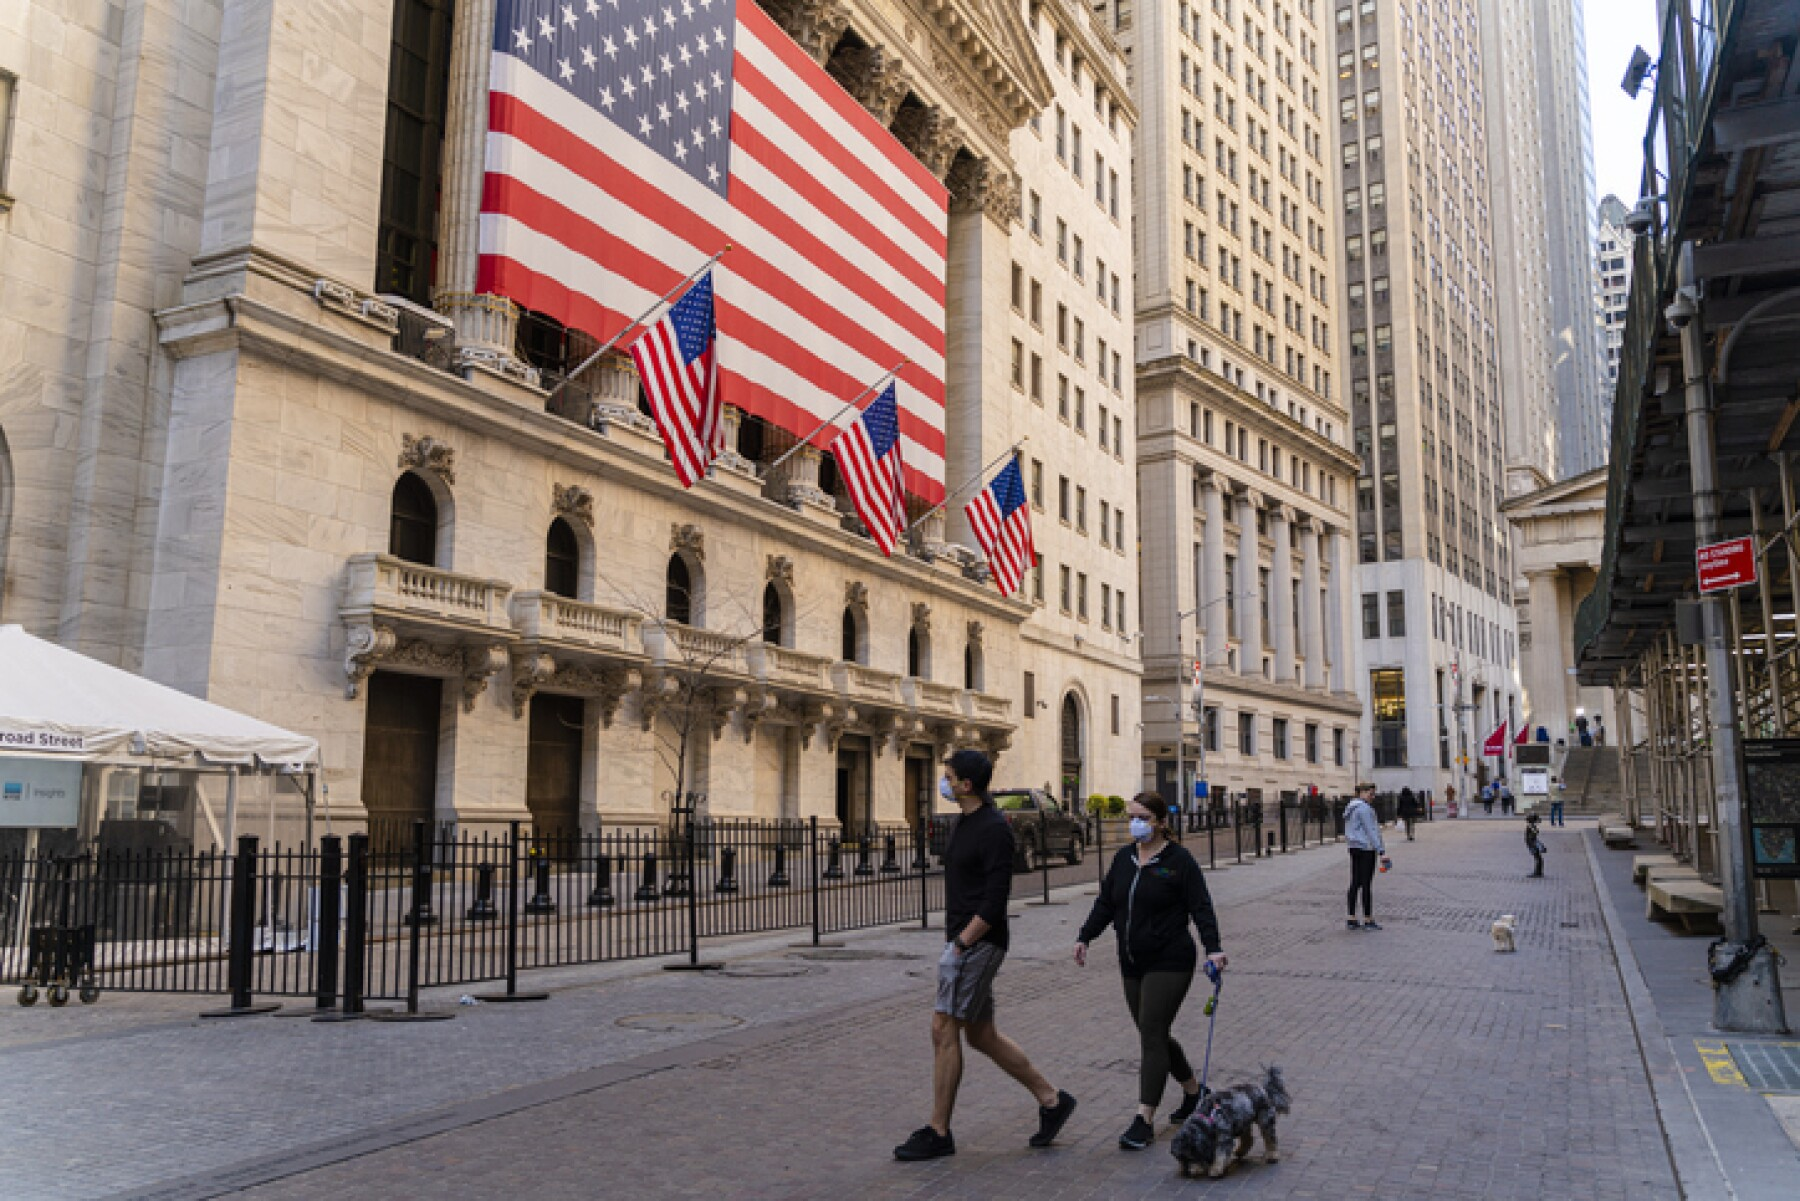 Economic recession is coming. 'Fearless Girl' Statue in front of the Stock Exchange from the Wall Street deserted because of the COVID-19 pandemic.